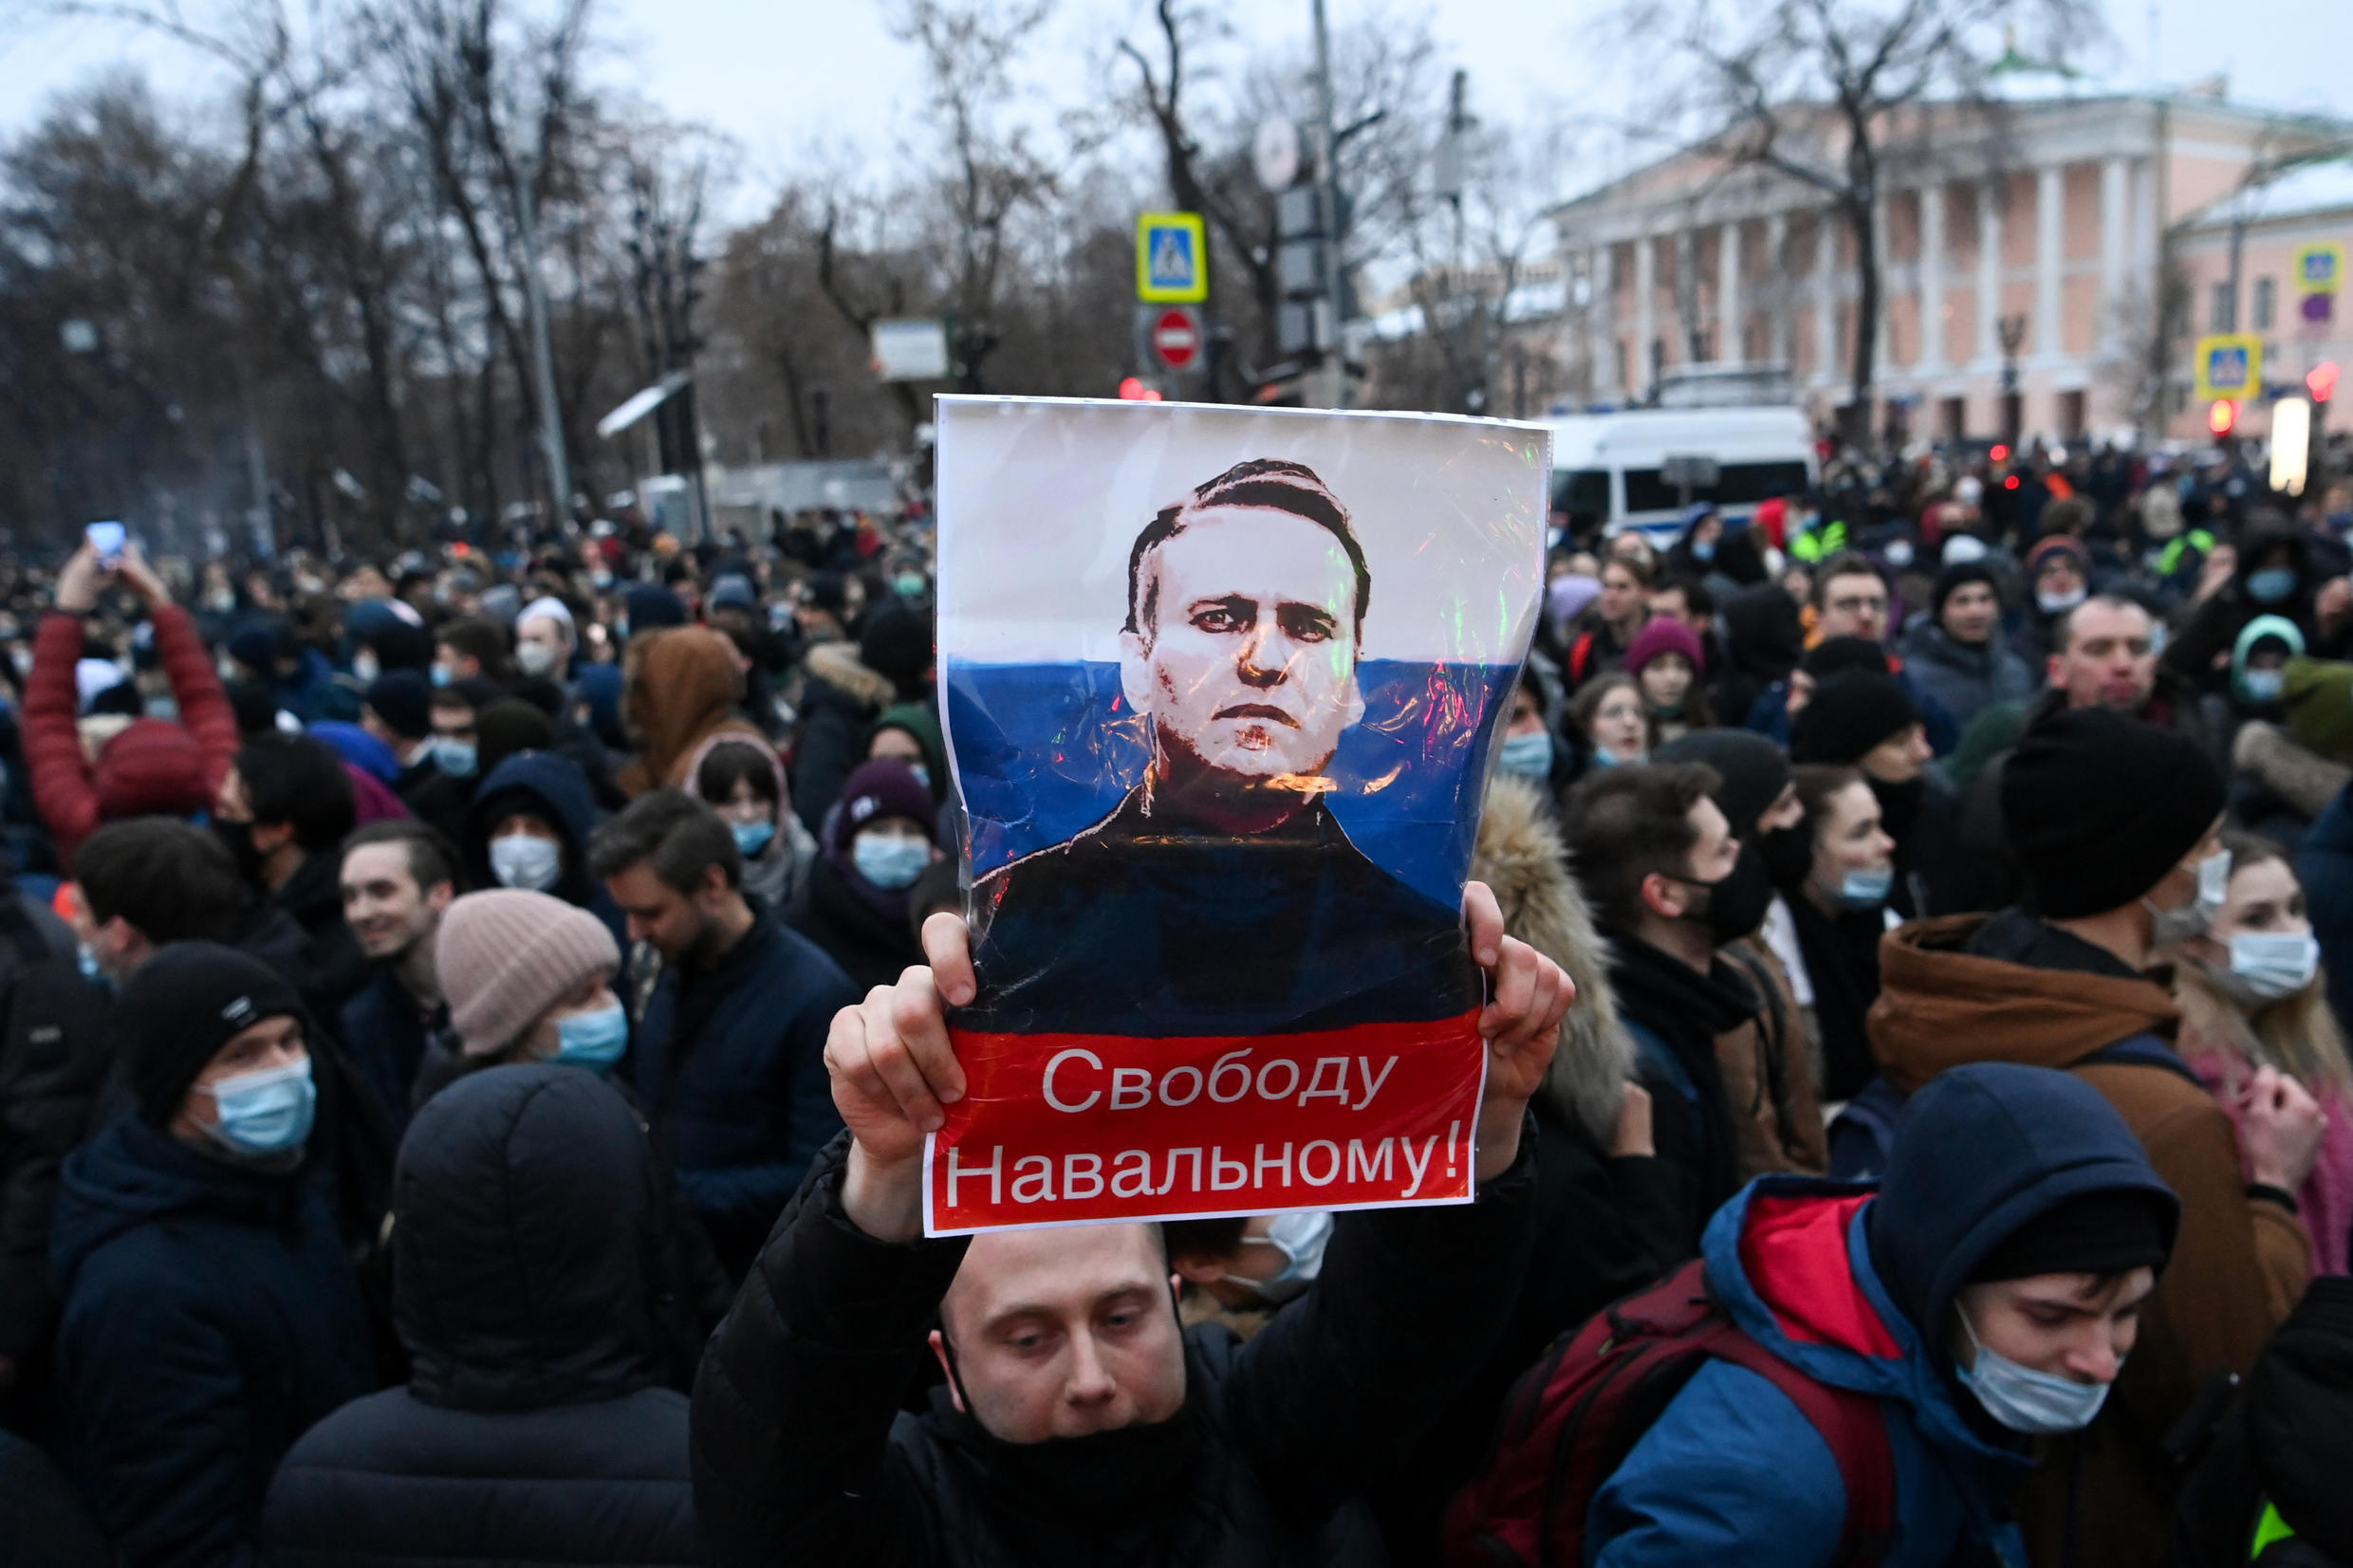 Tens of thousands of people demonstrated in cities across Russia on Saturday calling for Navalny's release